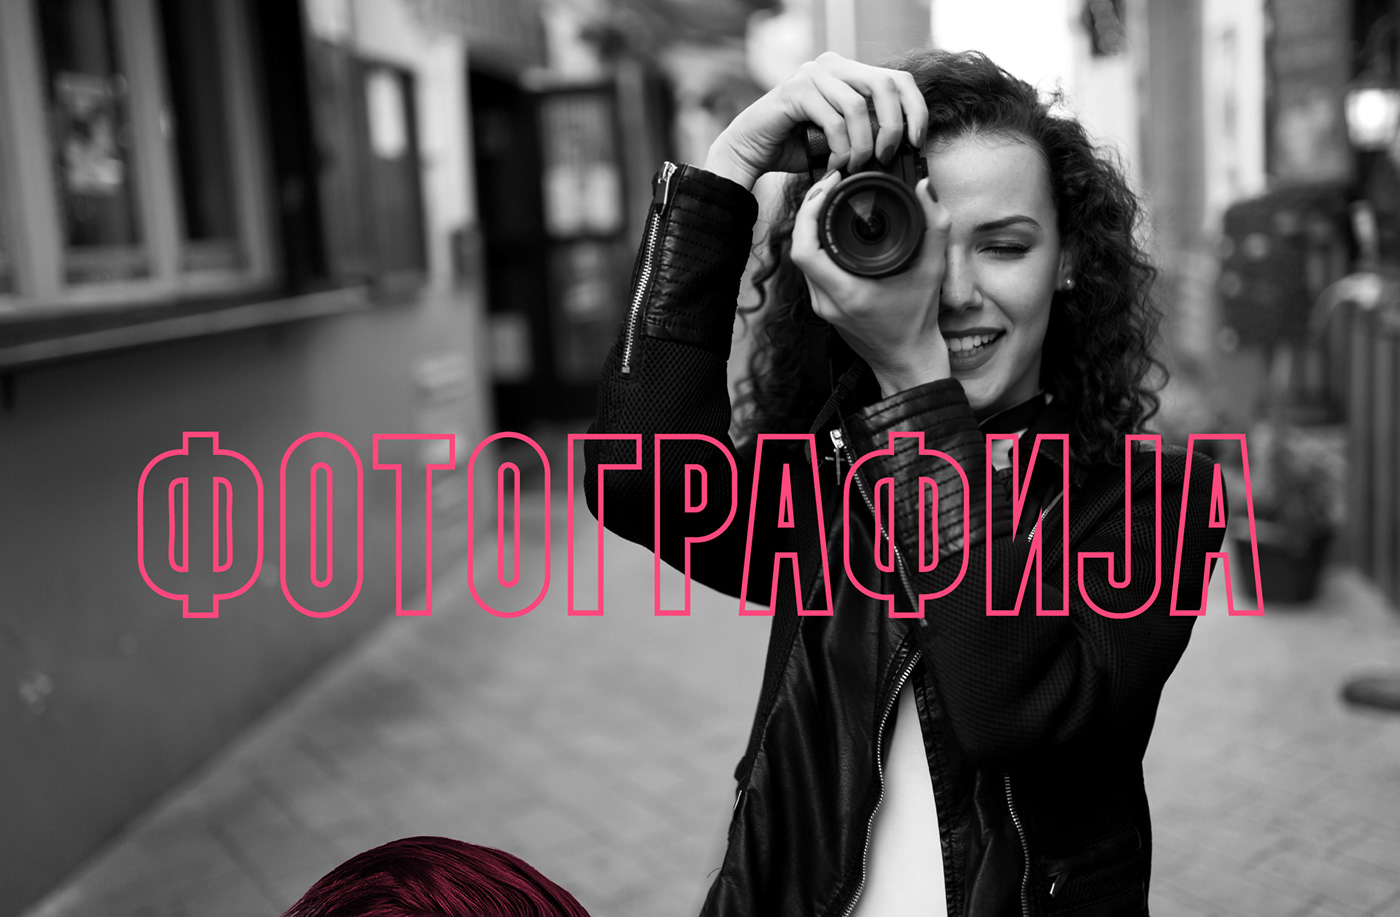 photographer girl with text in bold letters